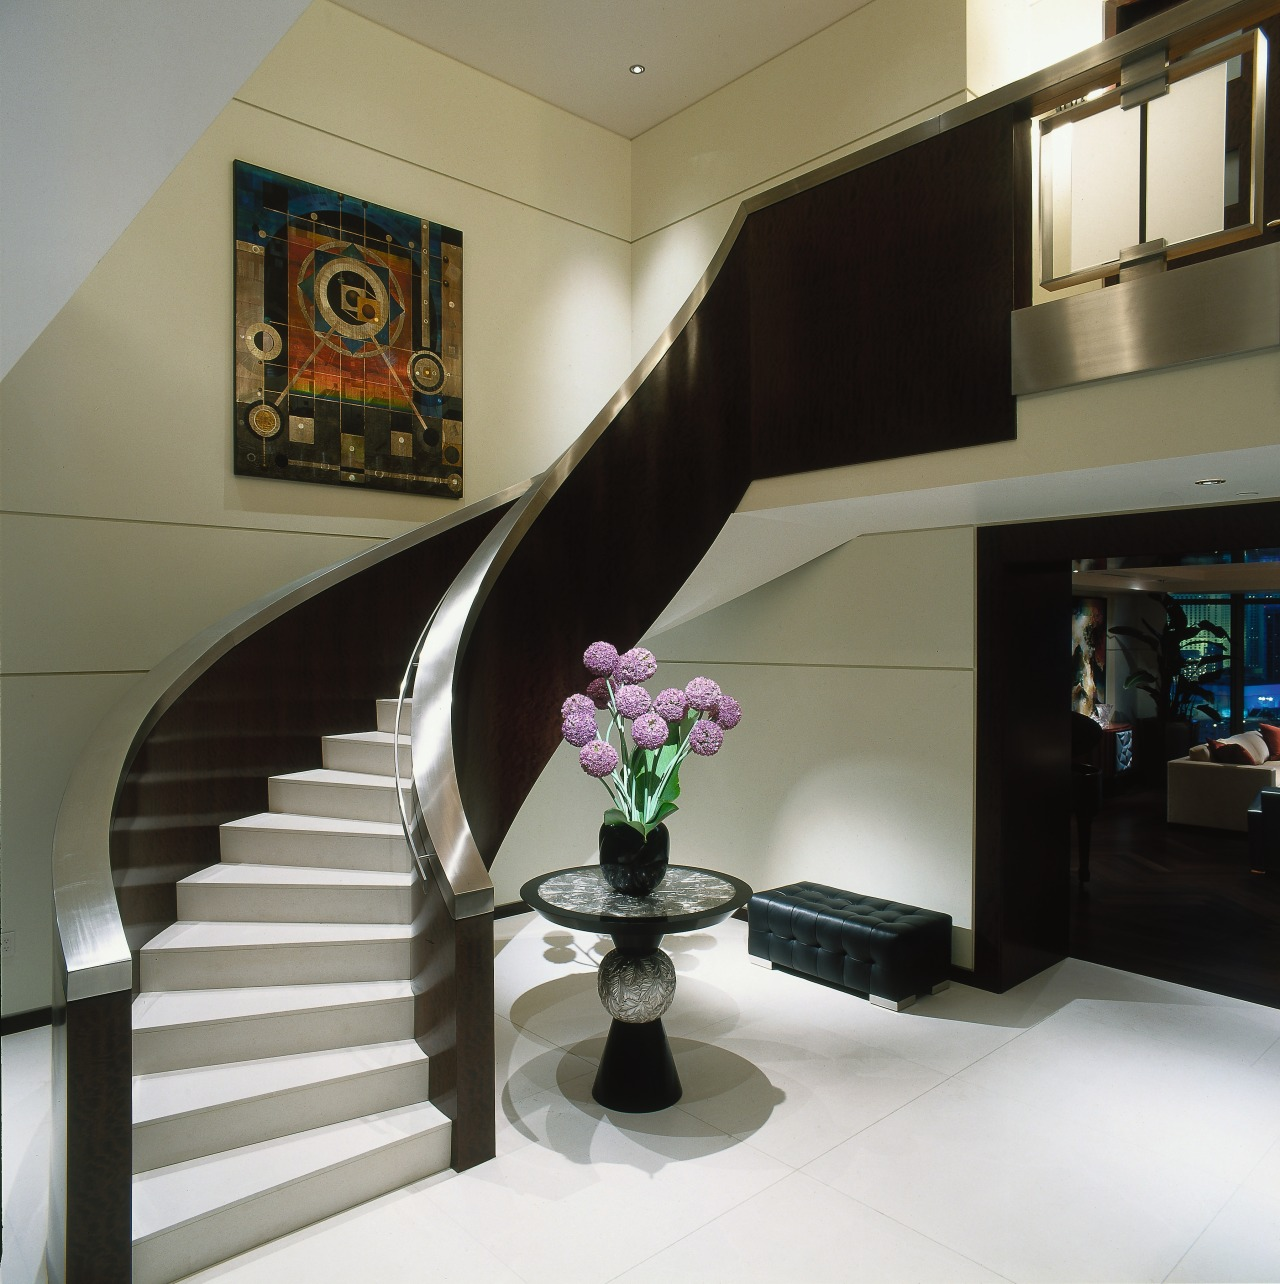 View of the stairway ceiling, floor, home, interior design, room, stairs, black, gray